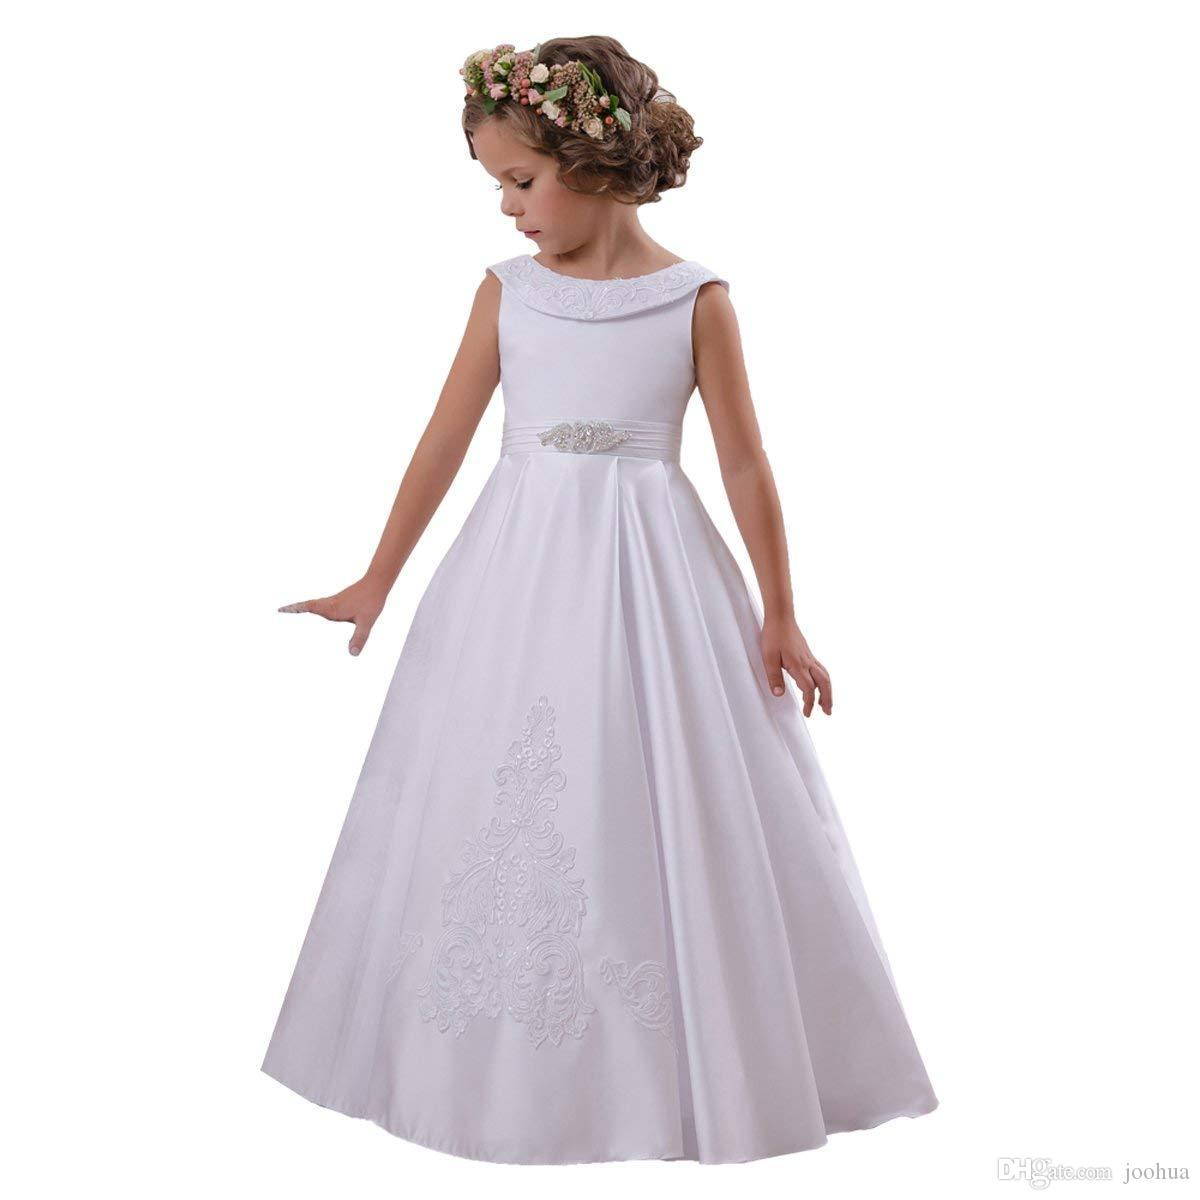 e8deaae5f6129 children bridesmaid dresses – Fashion dresses